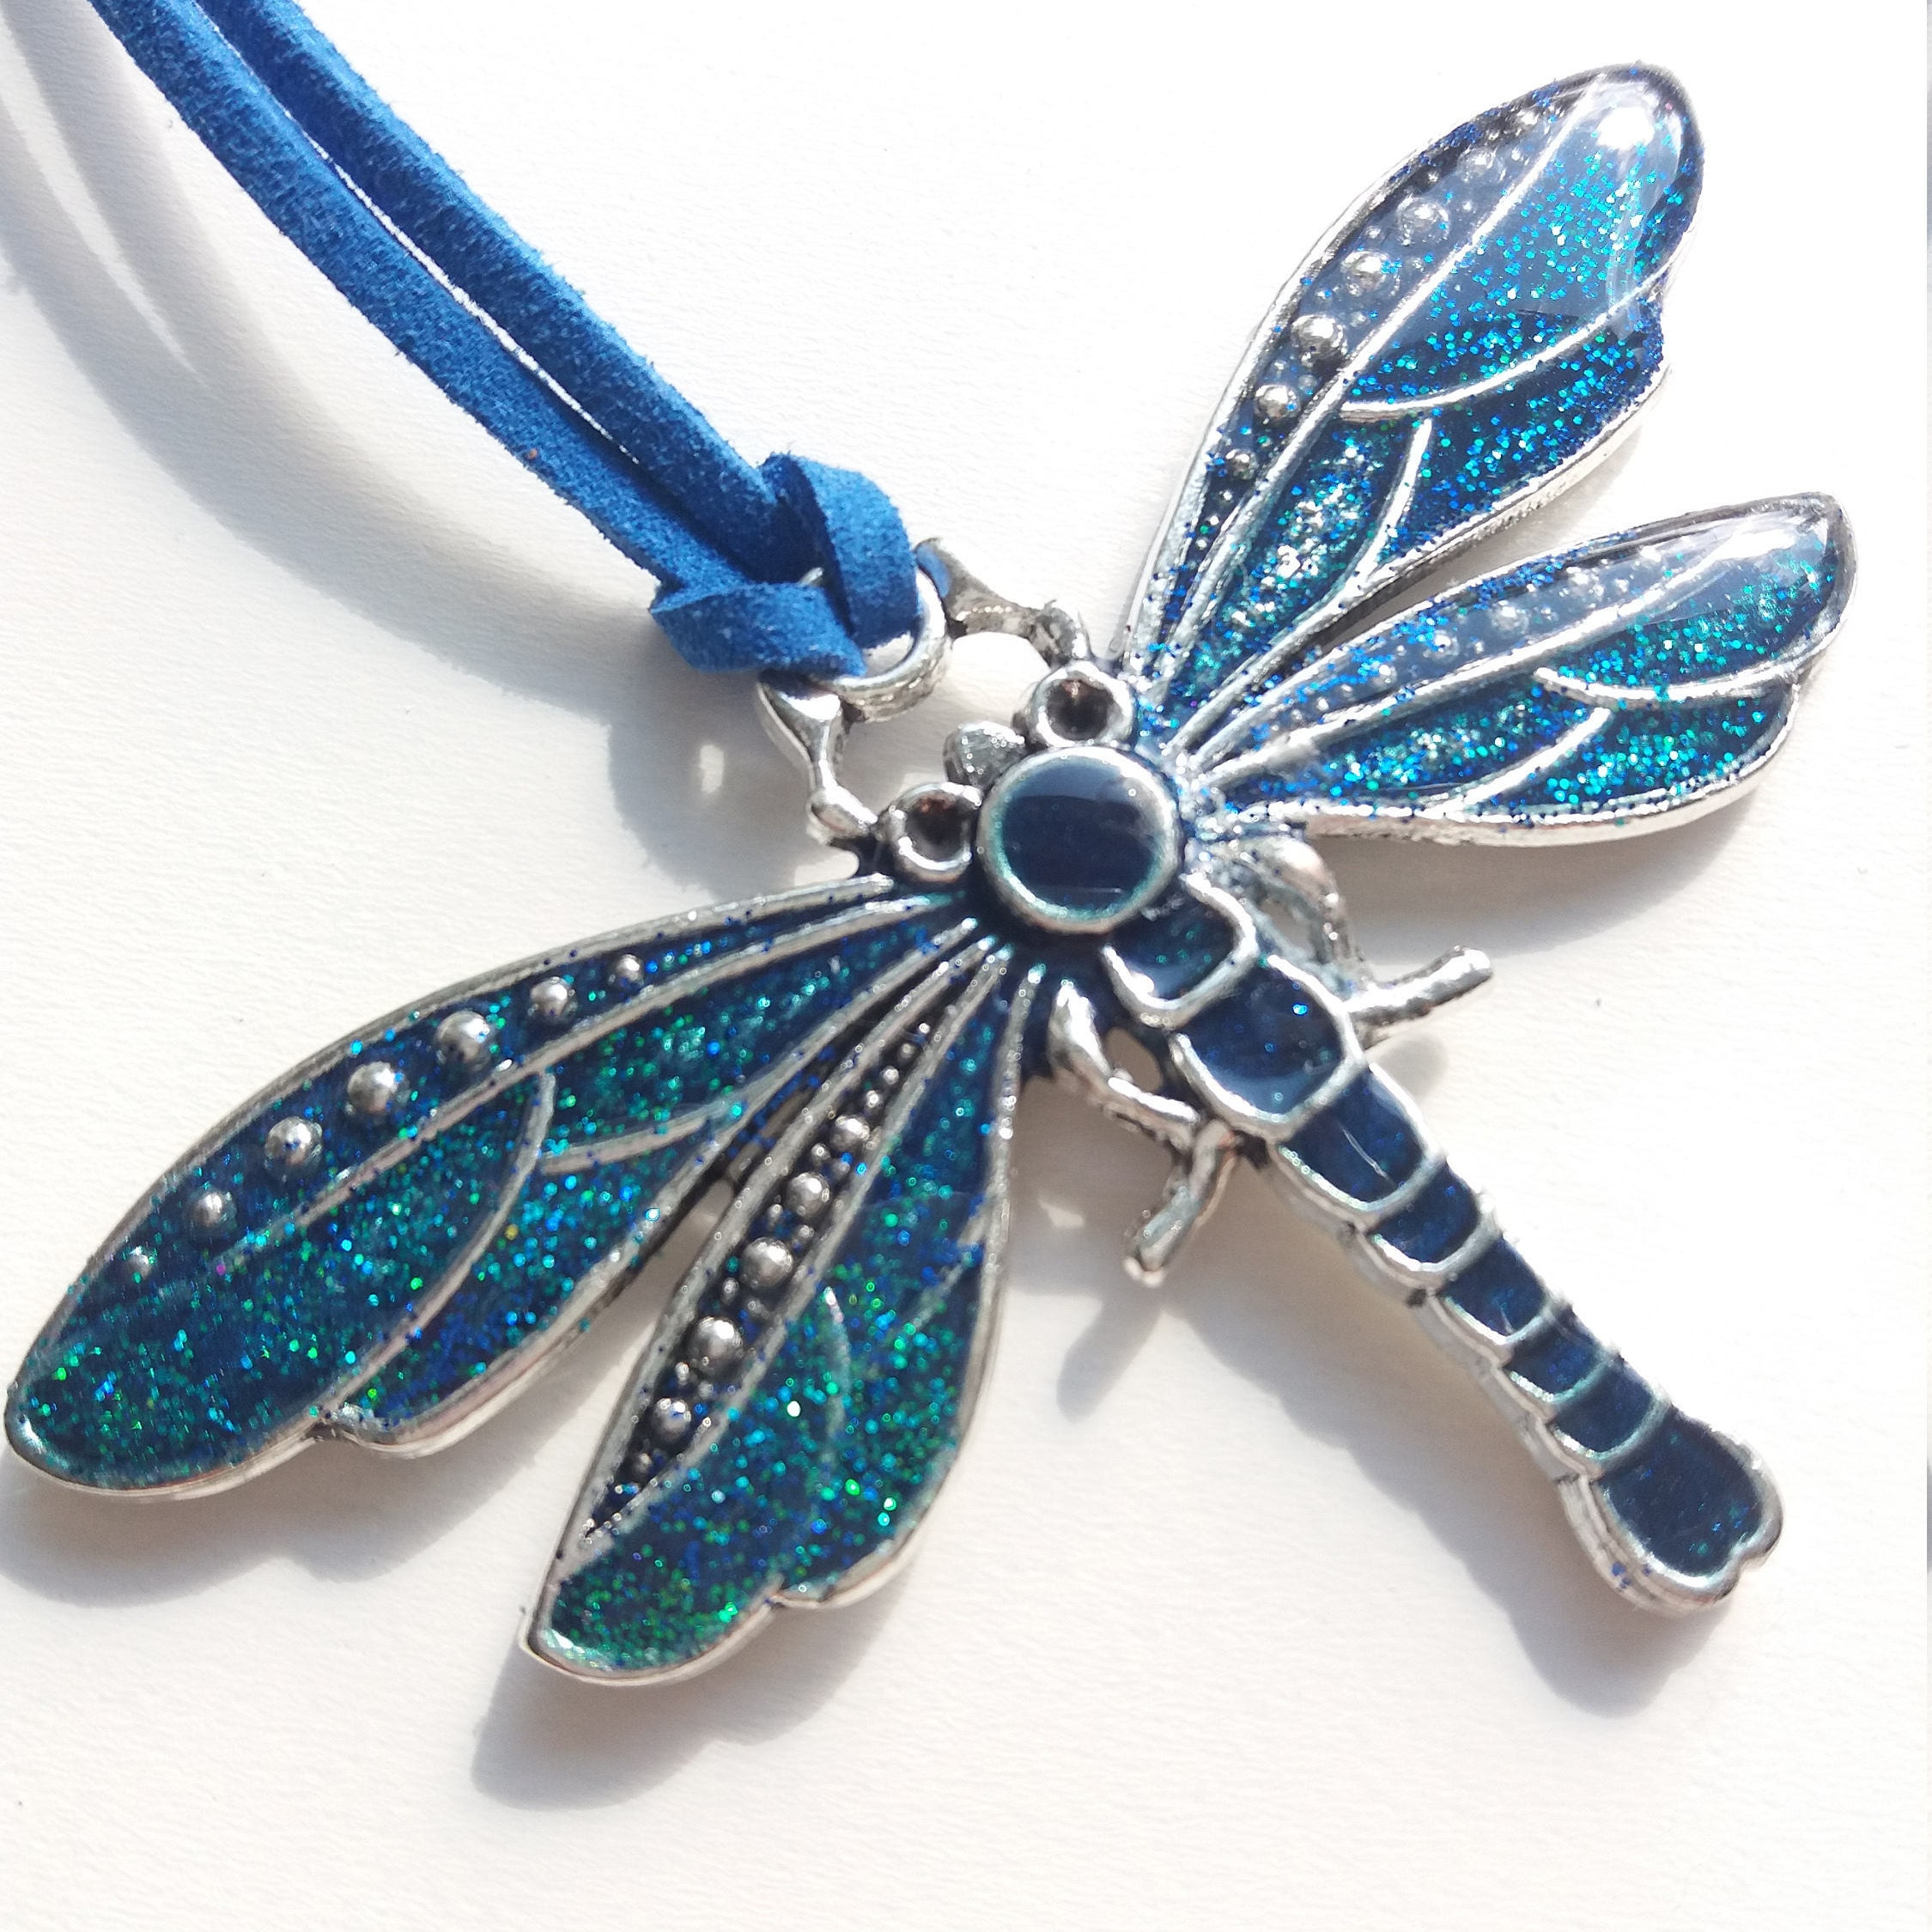 products dragonfly pin pendant farm shop